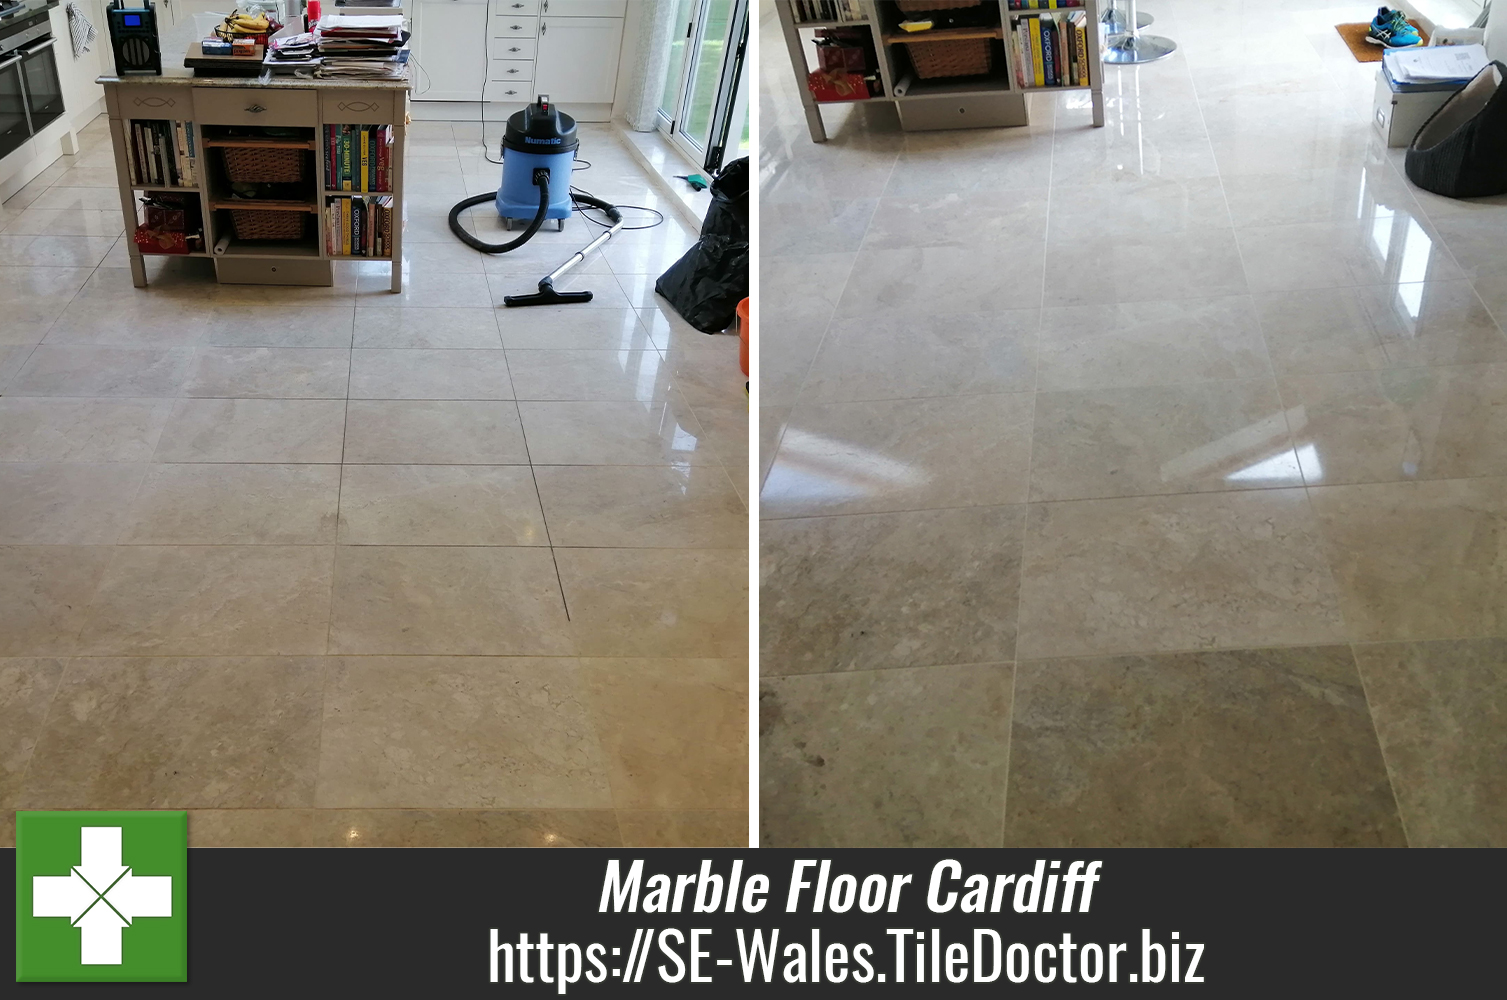 Marble-Tiled-Floor-Renovated-Cardiff-Wales